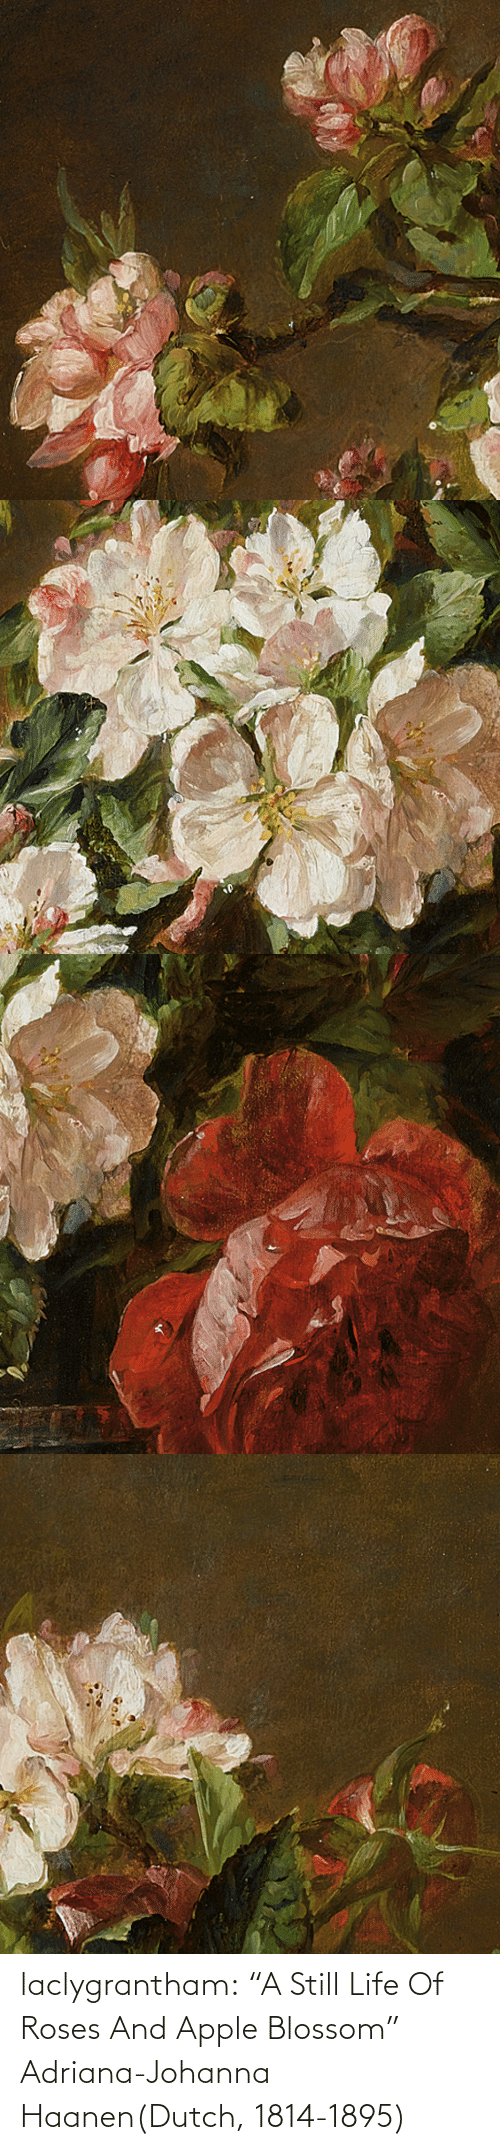 "html: laclygrantham:  ""A Still Life Of Roses And Apple Blossom"" Adriana-Johanna Haanen(Dutch, 1814-1895)"